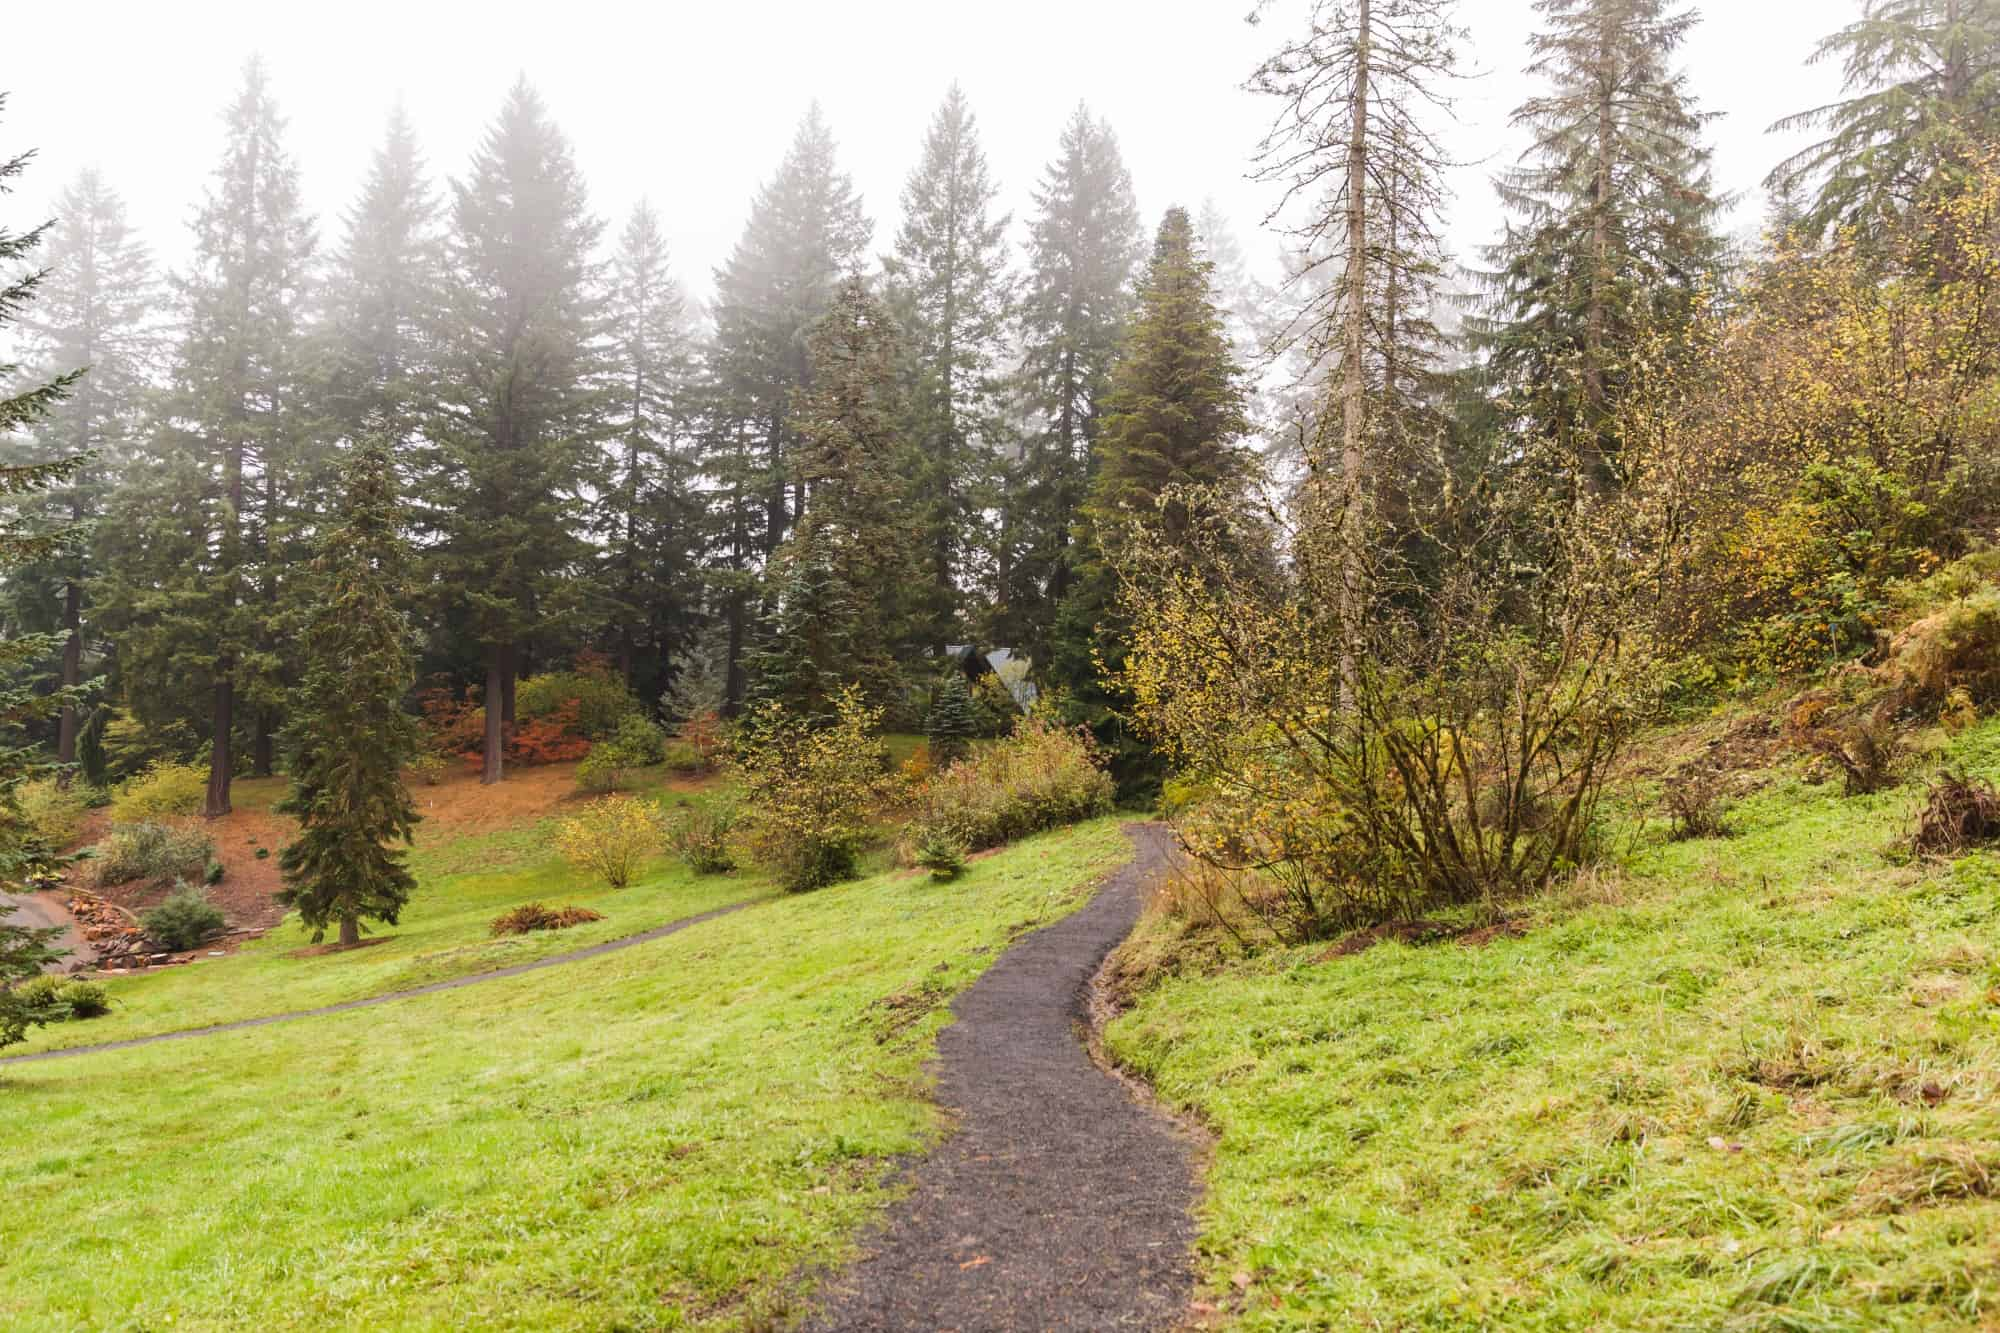 Favorite Places to Walk or Hike in Oregon